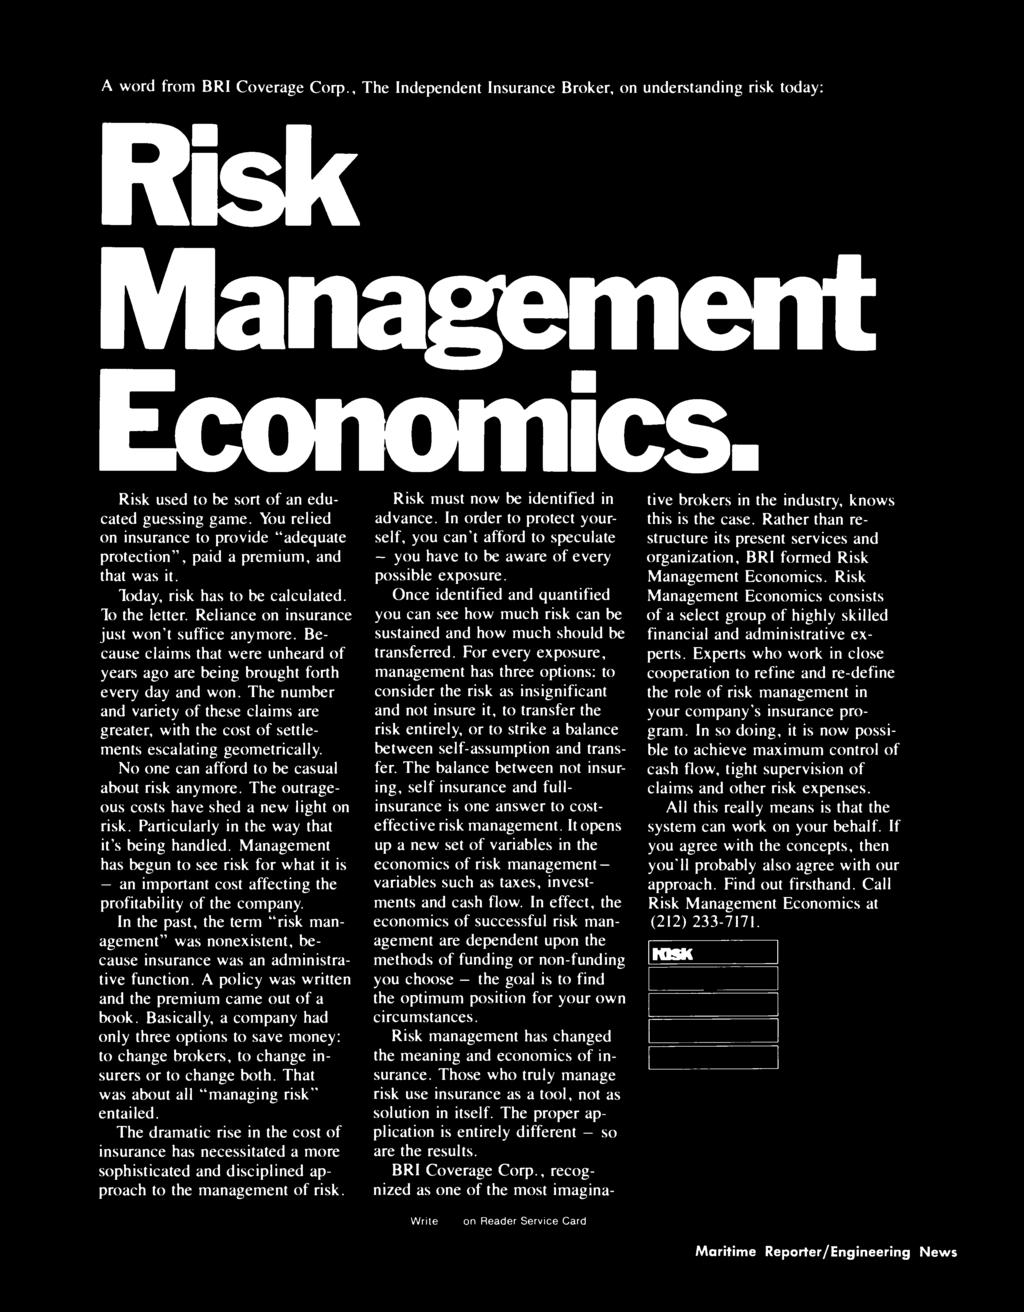 A word from BRI Coverage Corp., The Independent Insurance Broker, on understanding risk today: Risk Management Economics. Risk used to be sort of an educated guessing game.